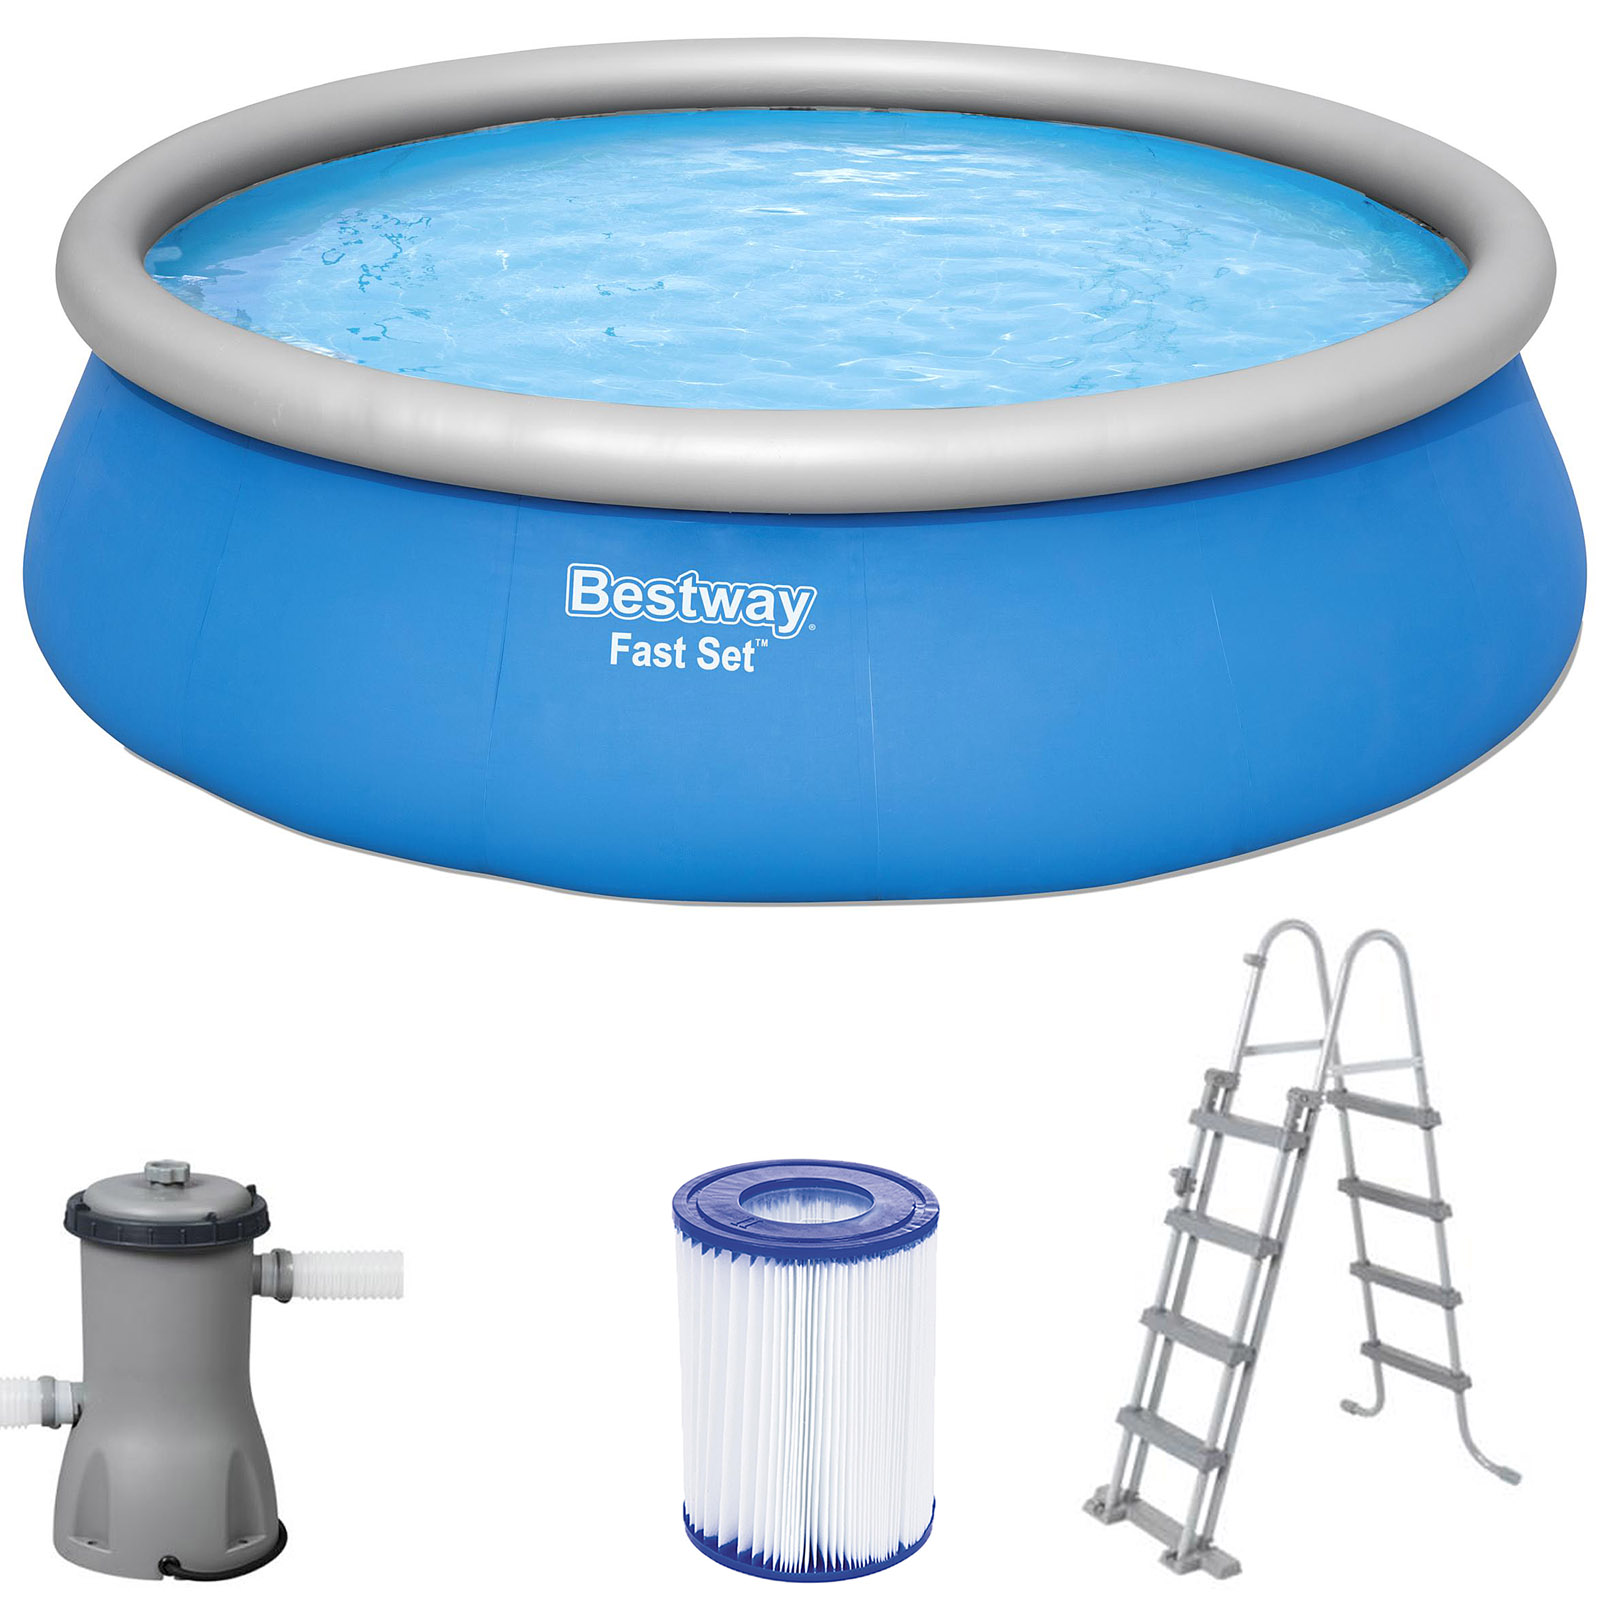 Pool Komplettset Bestway Bestway Pool Komplettset Schwimmbecken Swimming Pool